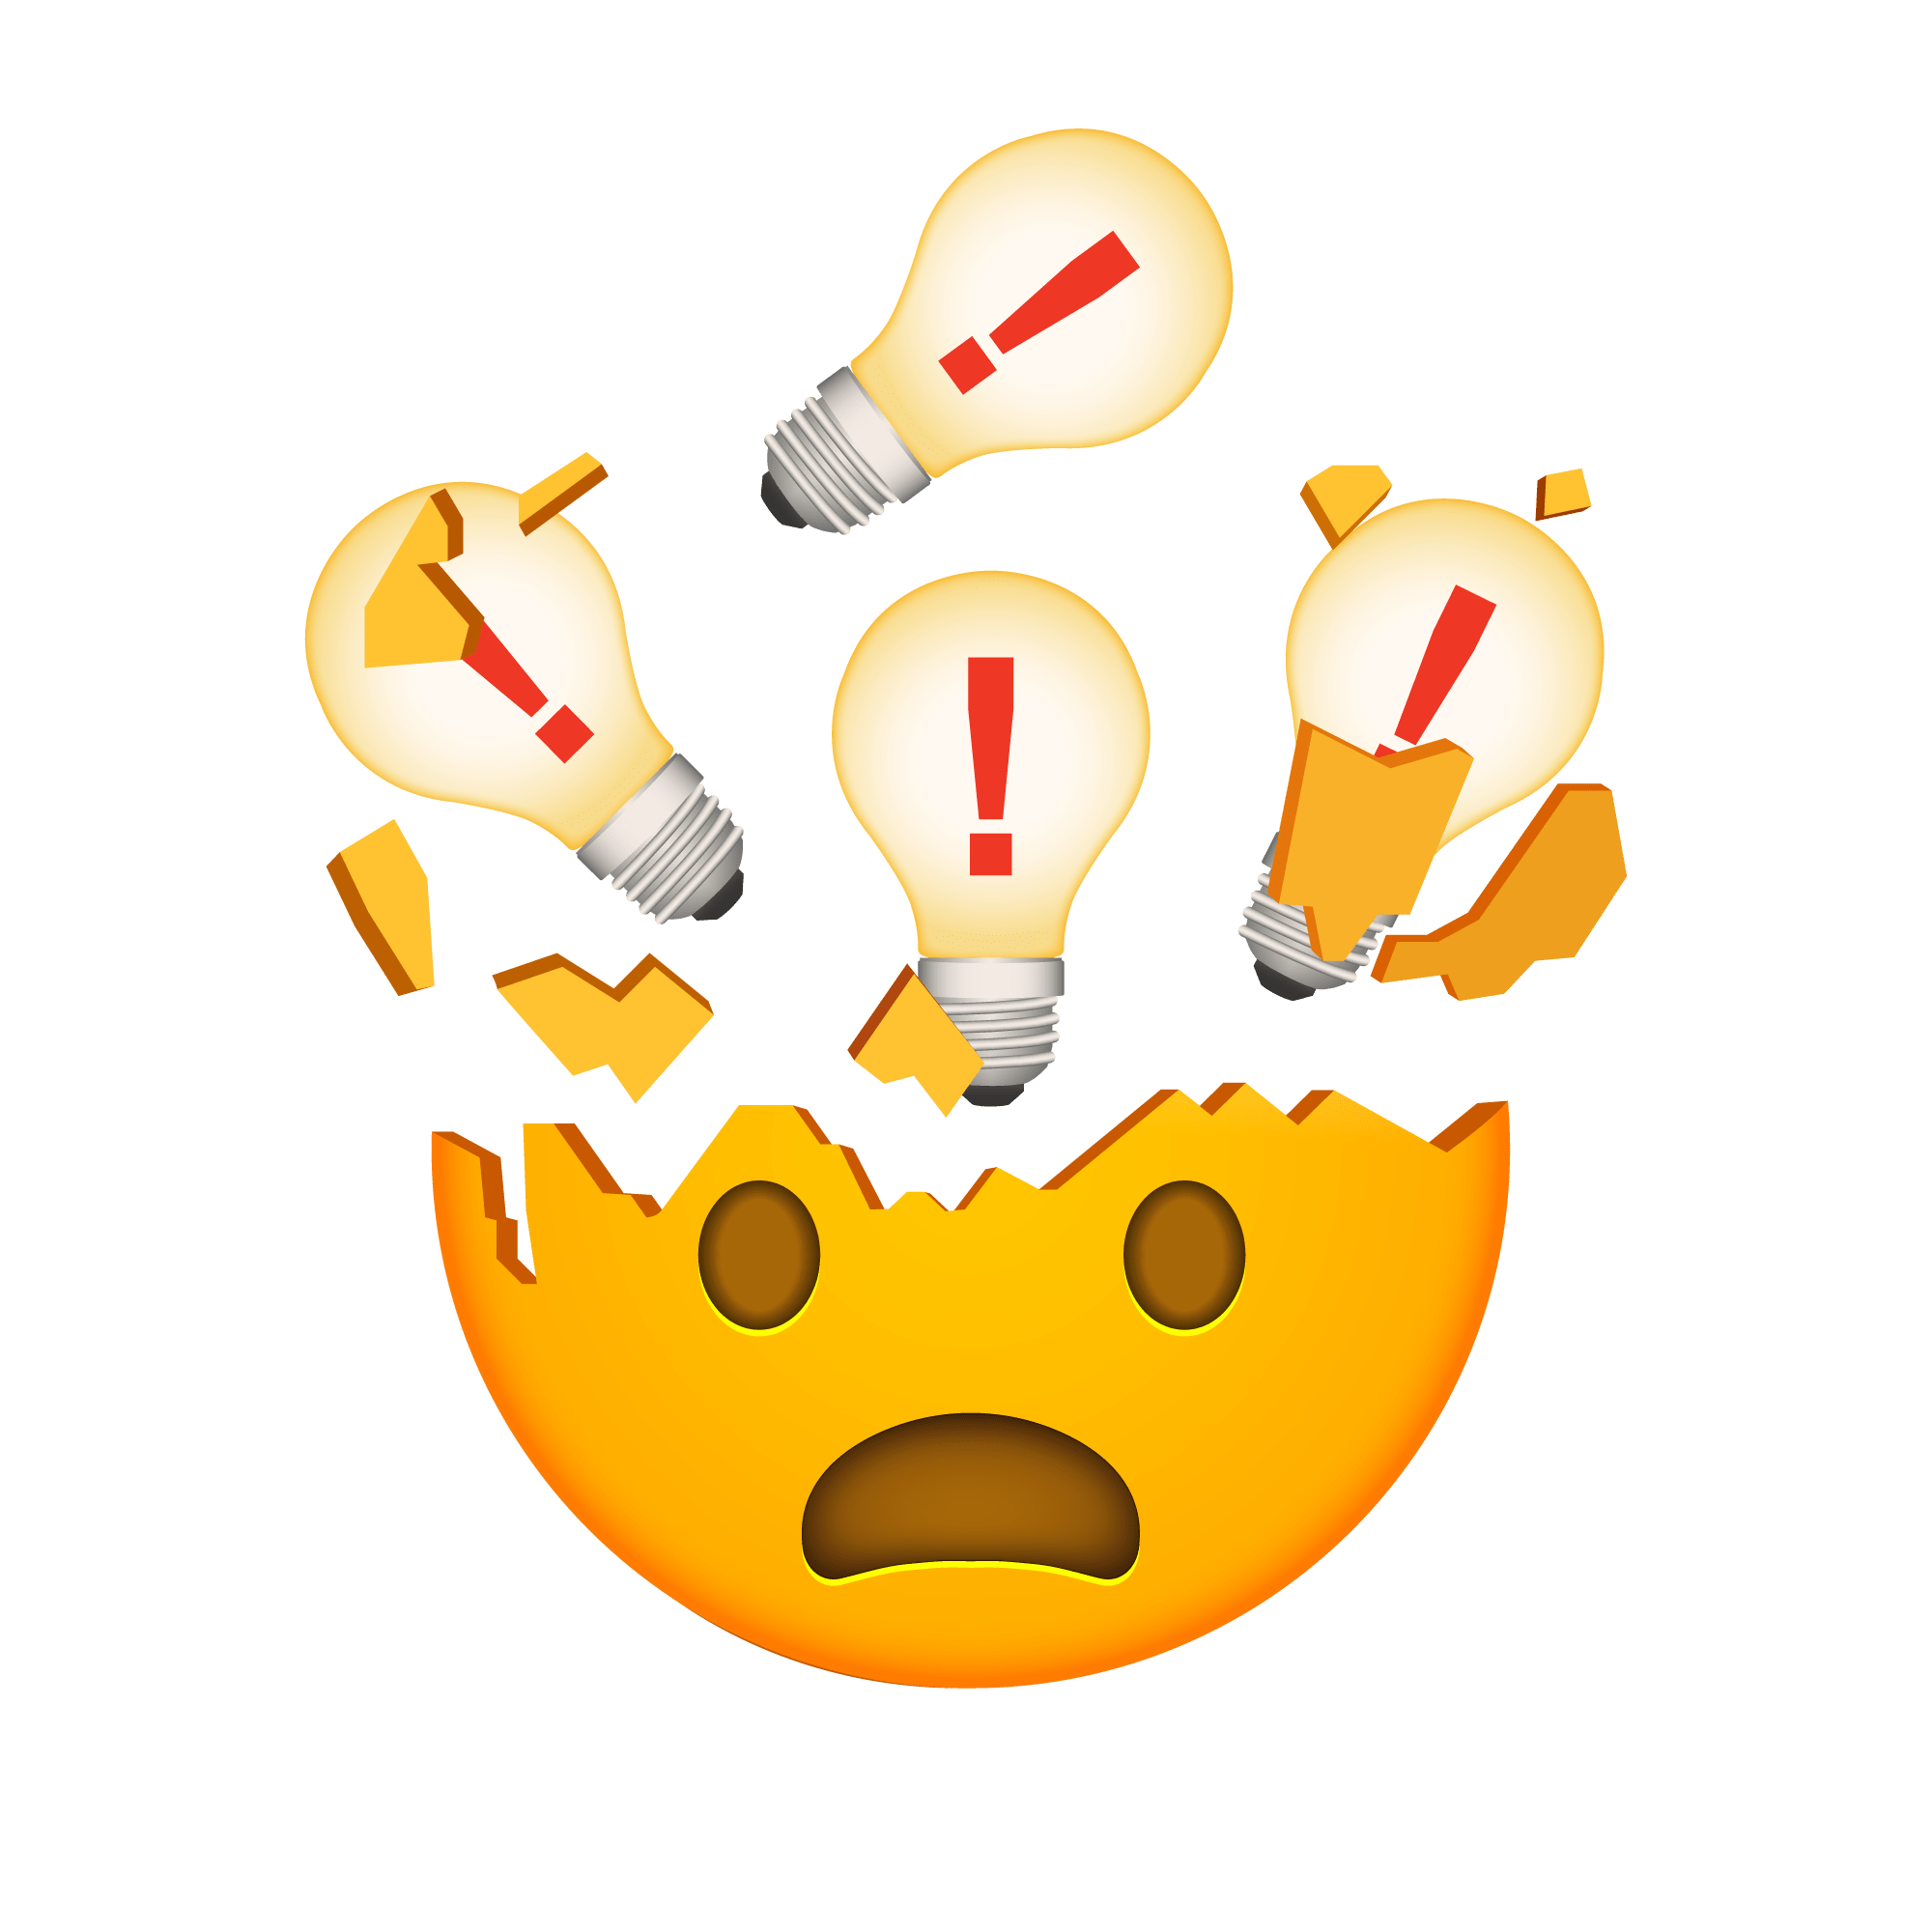 An emoji of a mind-blown face with lightbulbs over it.